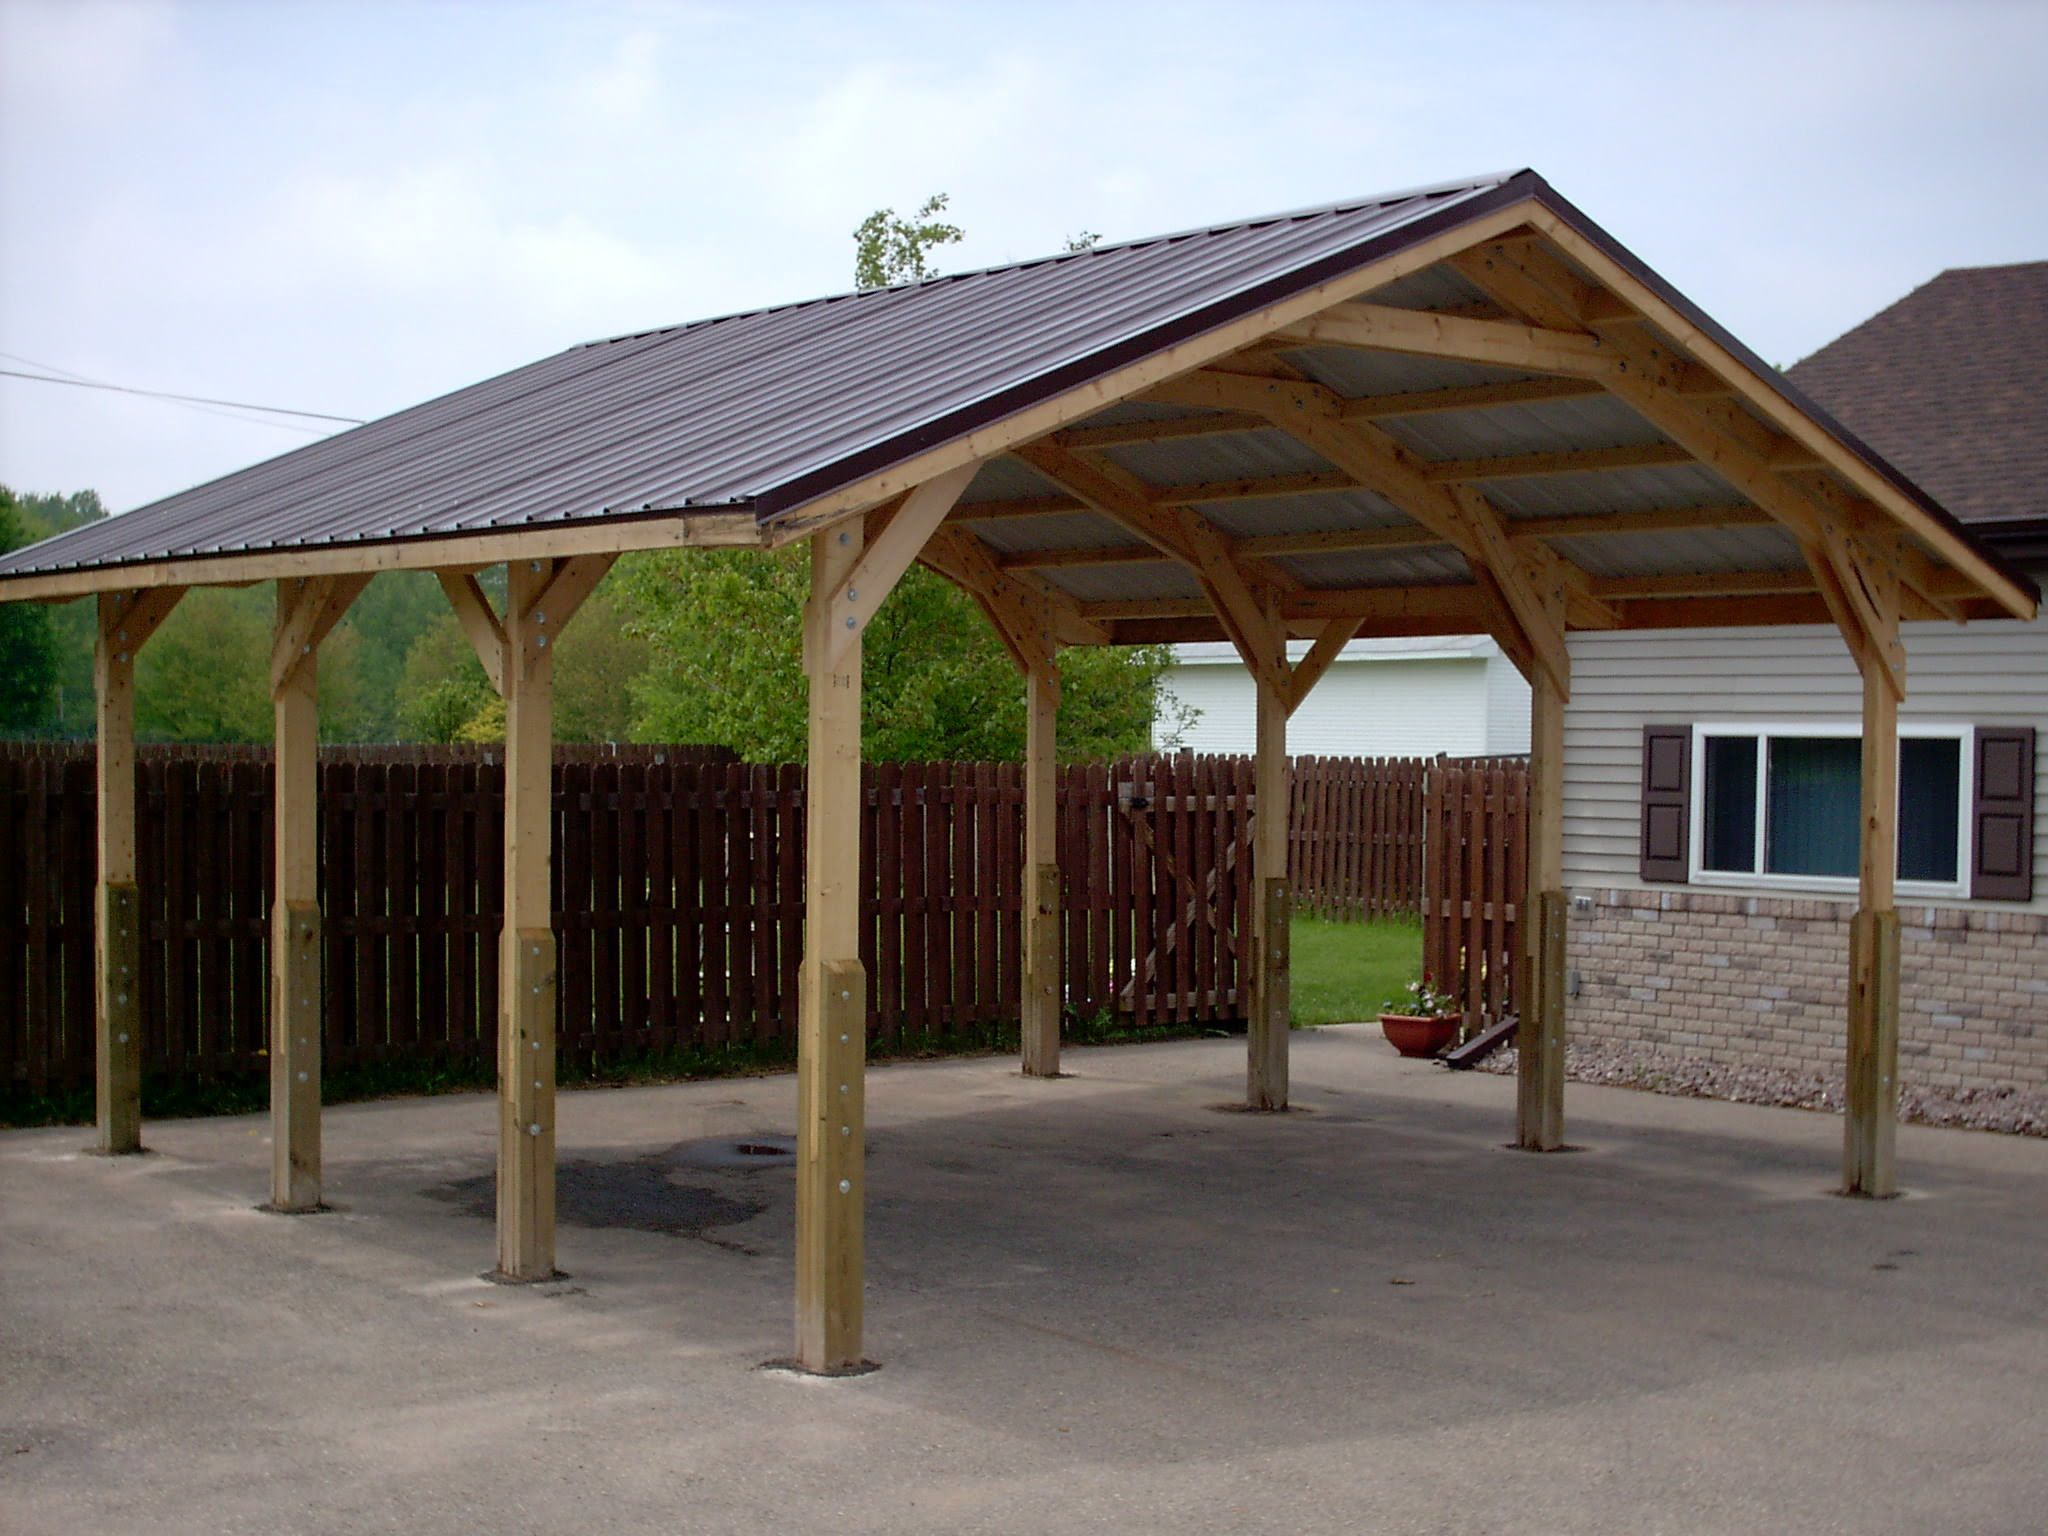 Car port shawanocarport wayneofbowler car ports for Garage plans with carport